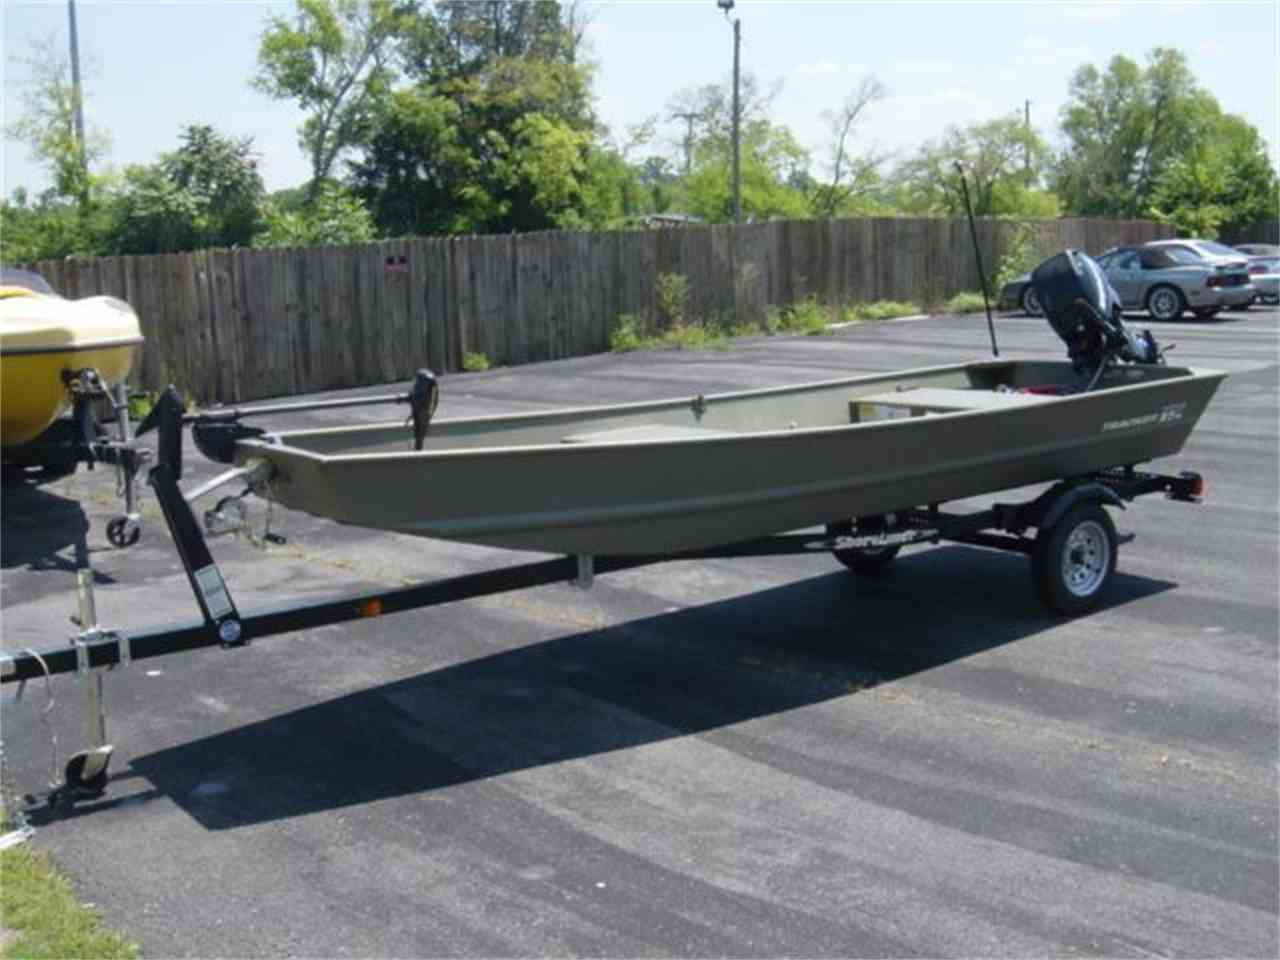 2013 Tracker Boat for Sale - CC-650482